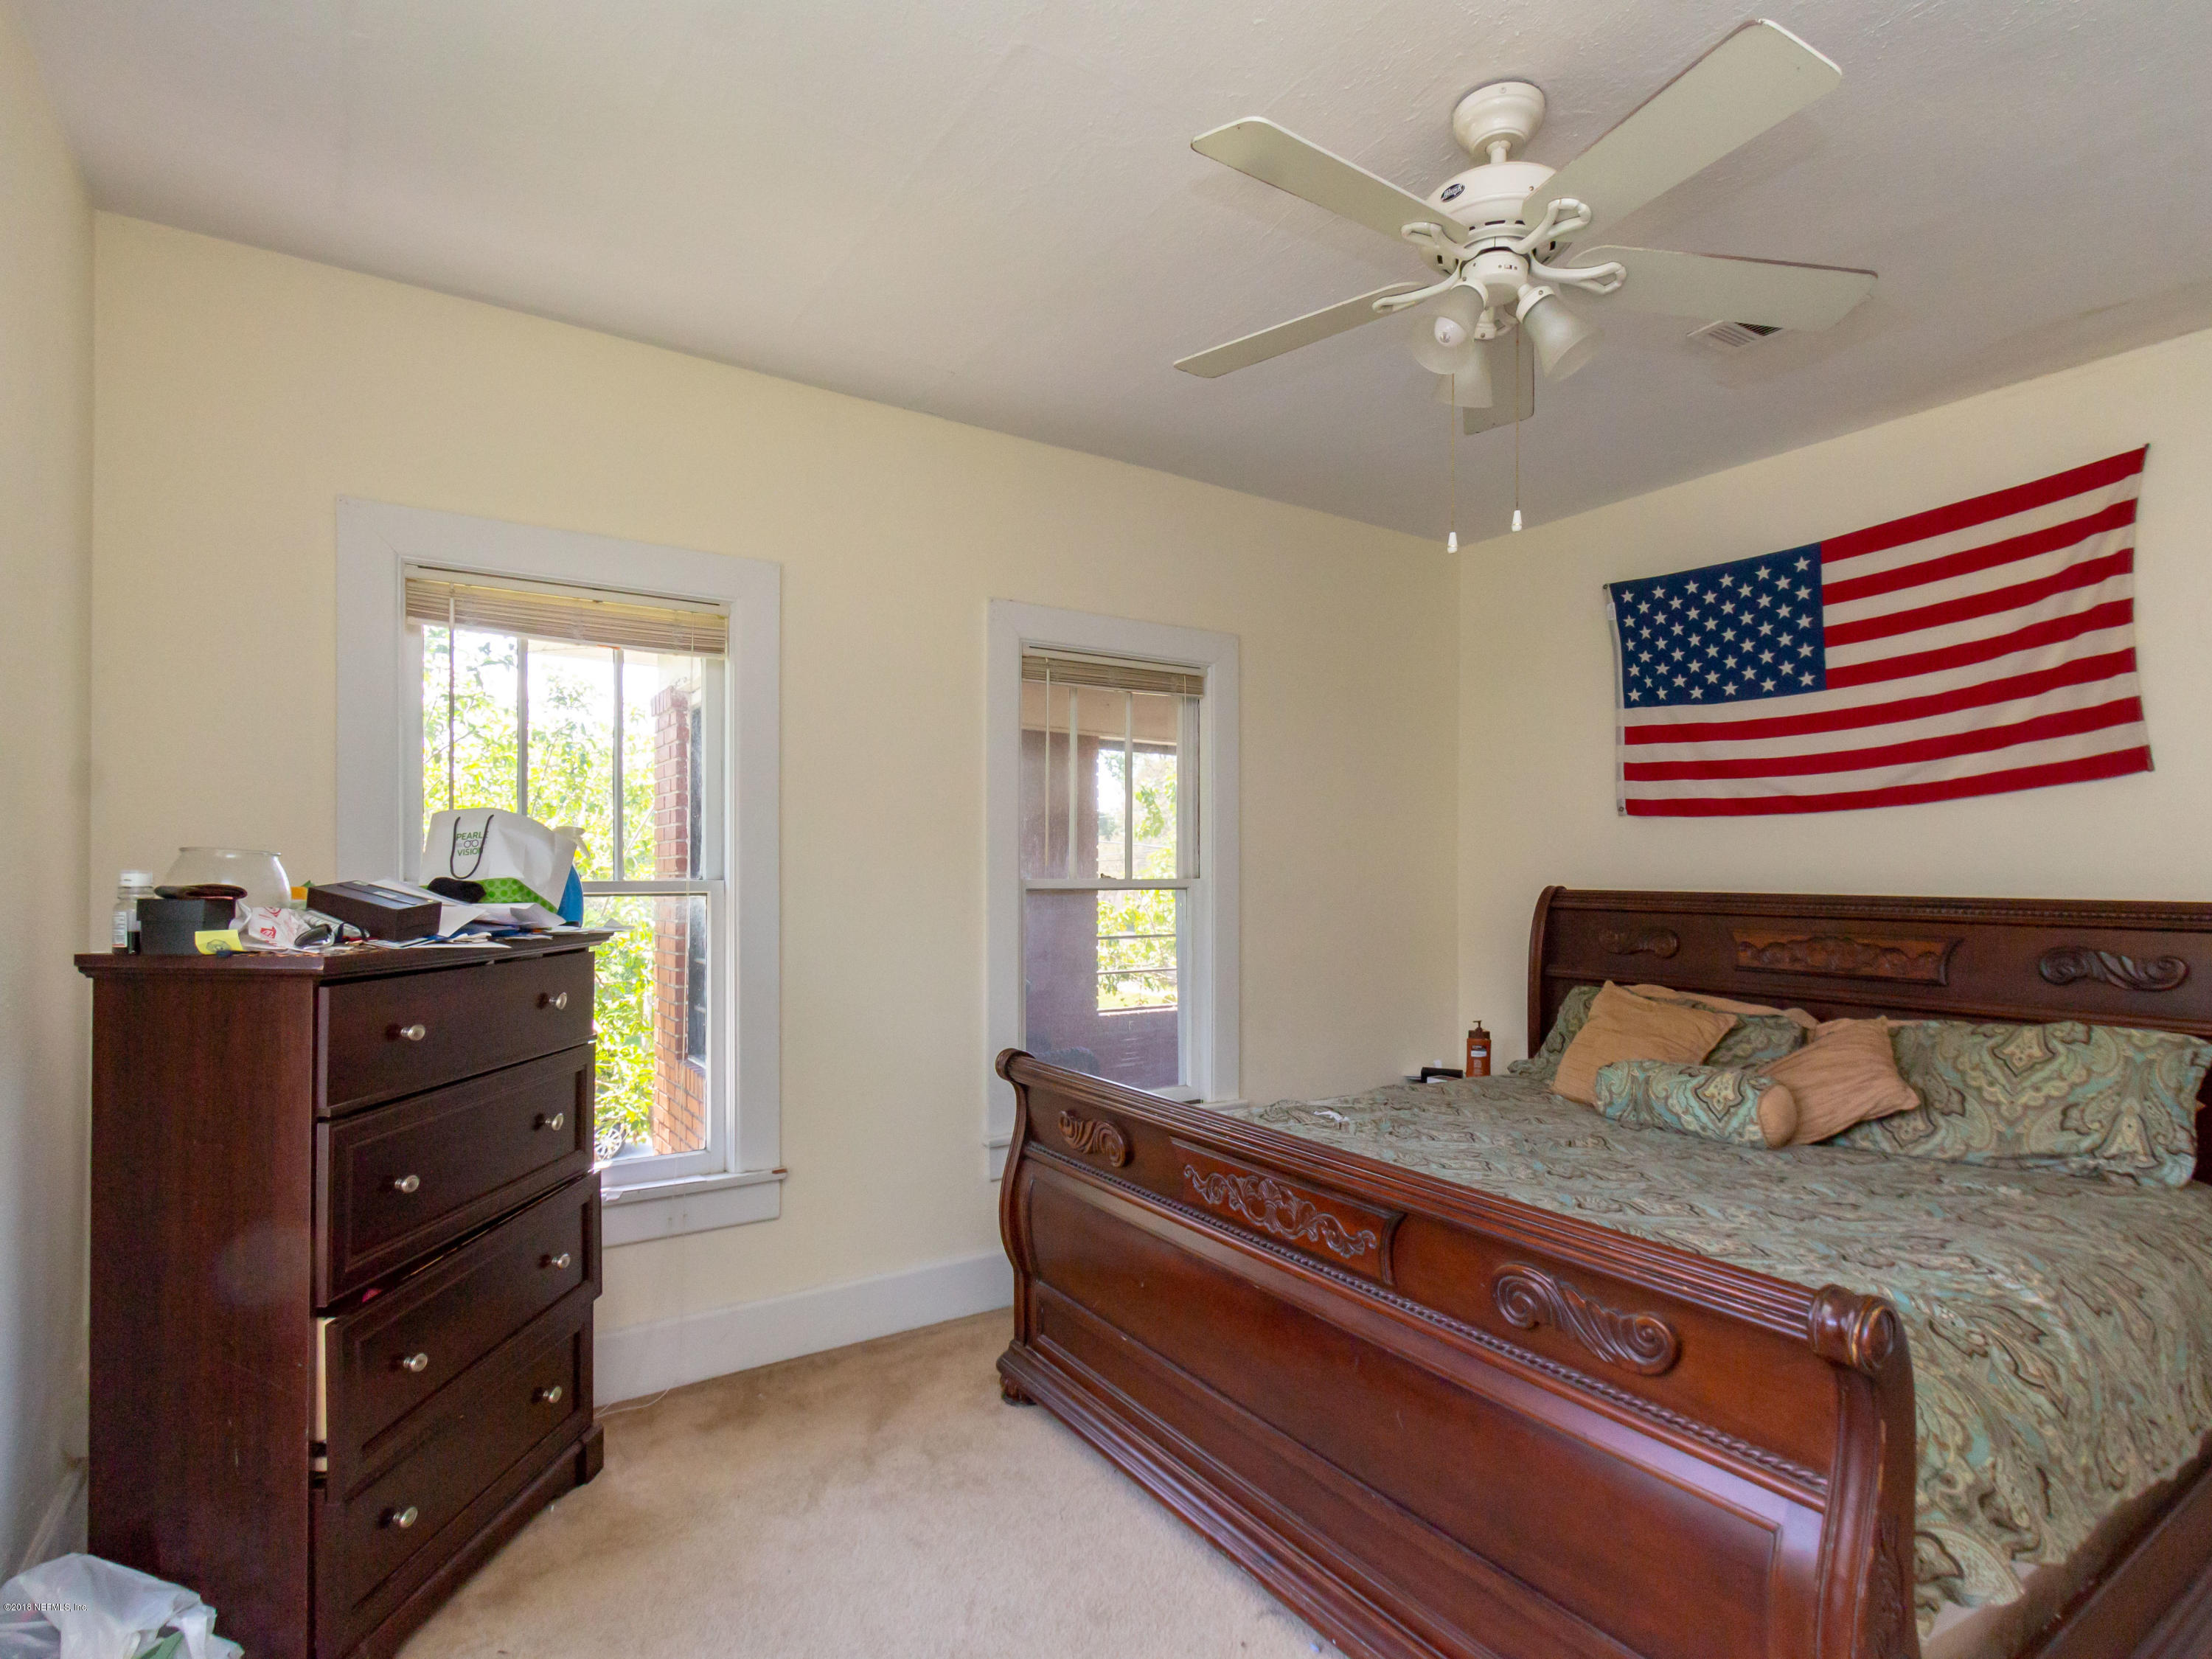 2863 LYDIA, JACKSONVILLE, FLORIDA 32205, 5 Bedrooms Bedrooms, ,3 BathroomsBathrooms,Commercial,For sale,LYDIA,935087